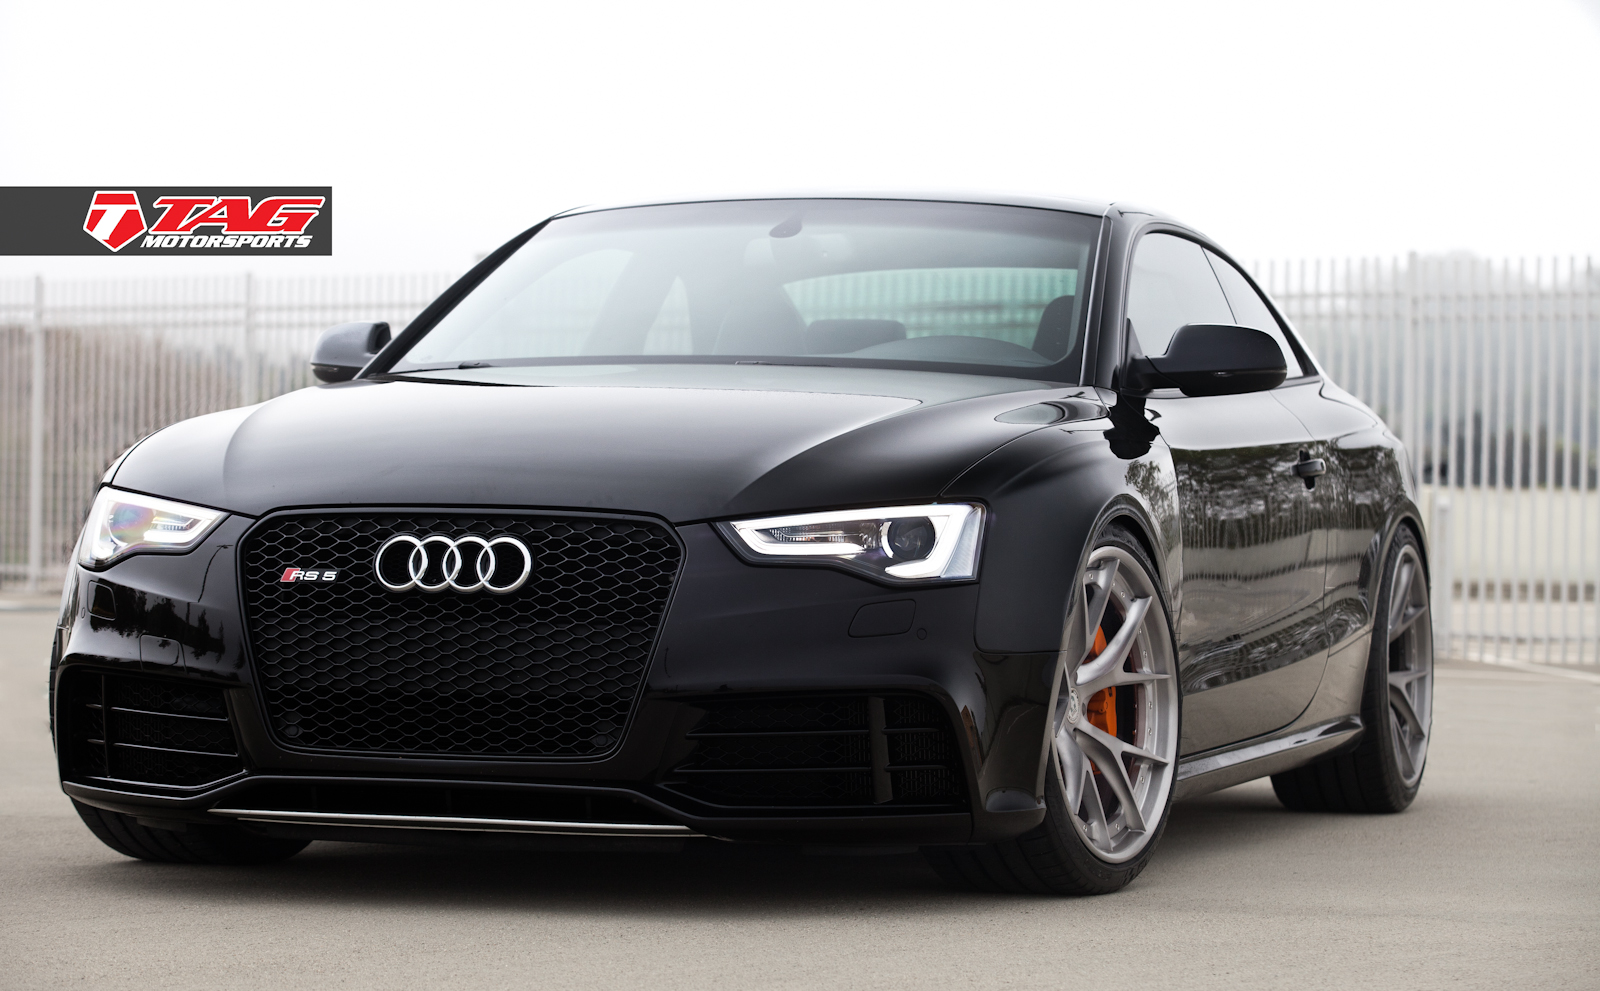 audi rs5 images #6